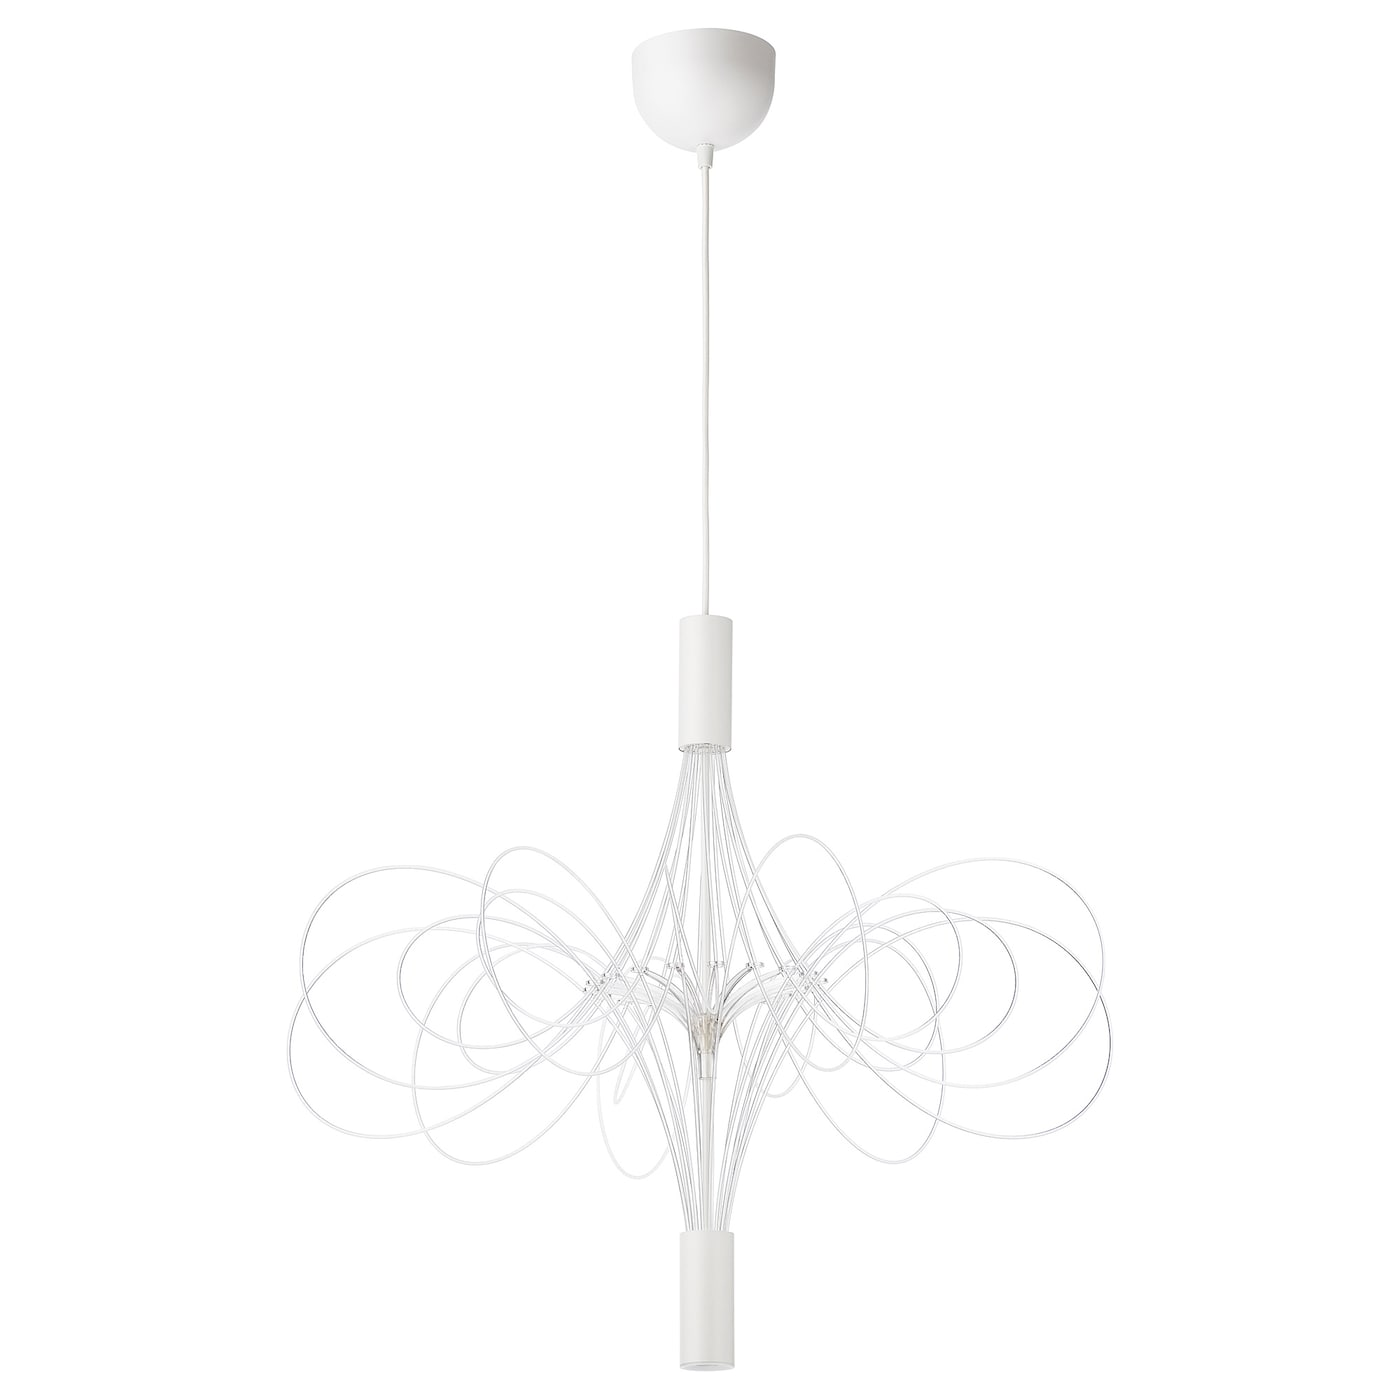 lights view of chandelier collection for zspmed chandeliers best ikea intended